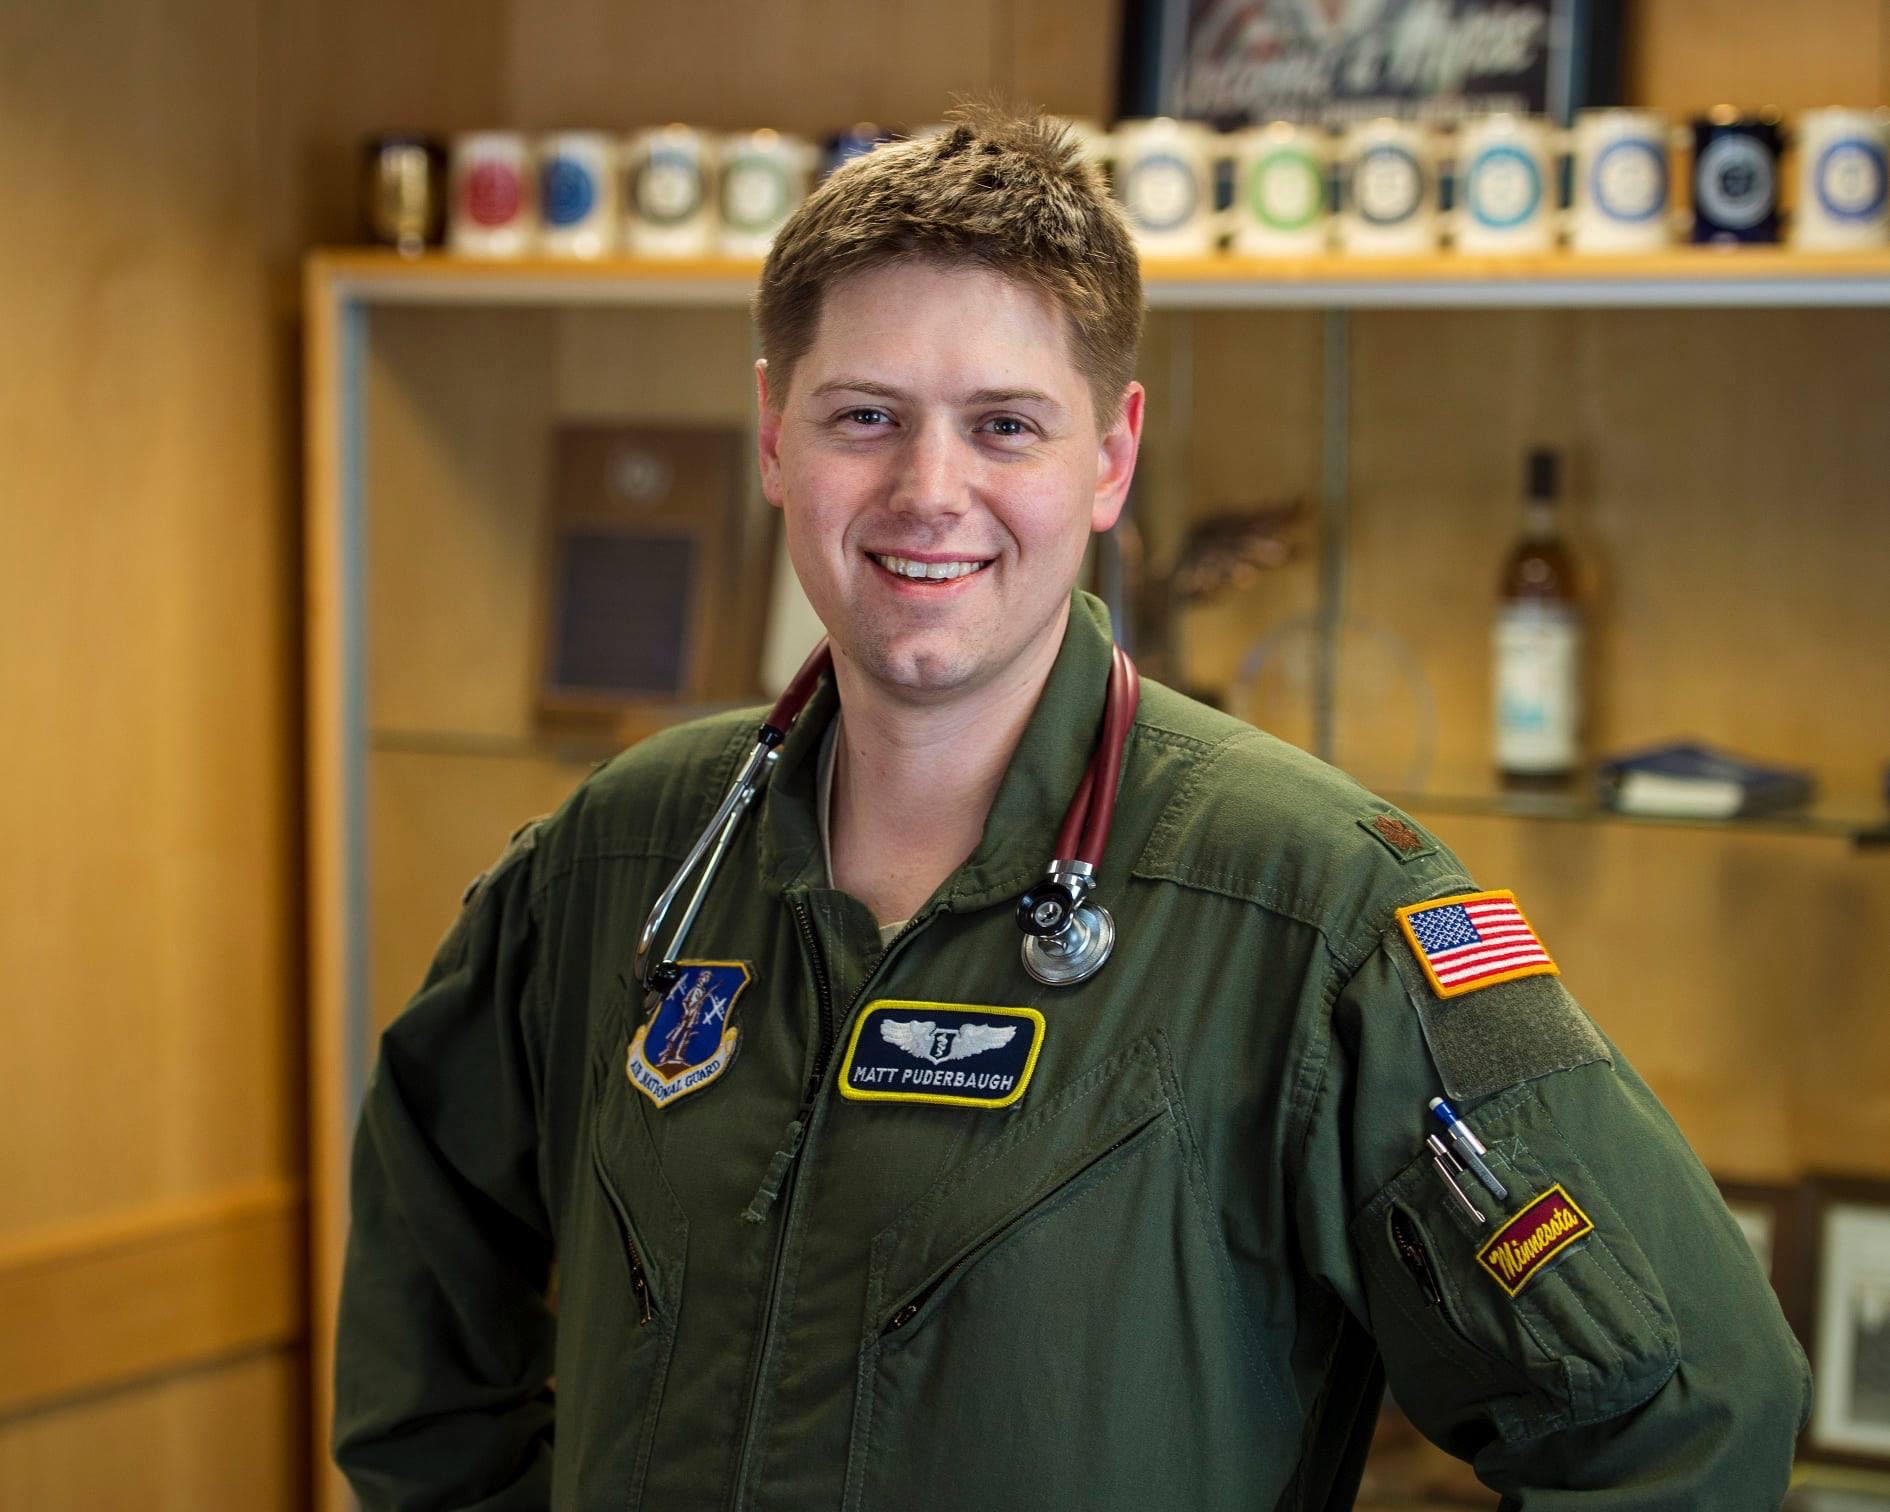 Dr. Matthew Puderbaugh in the National Guard